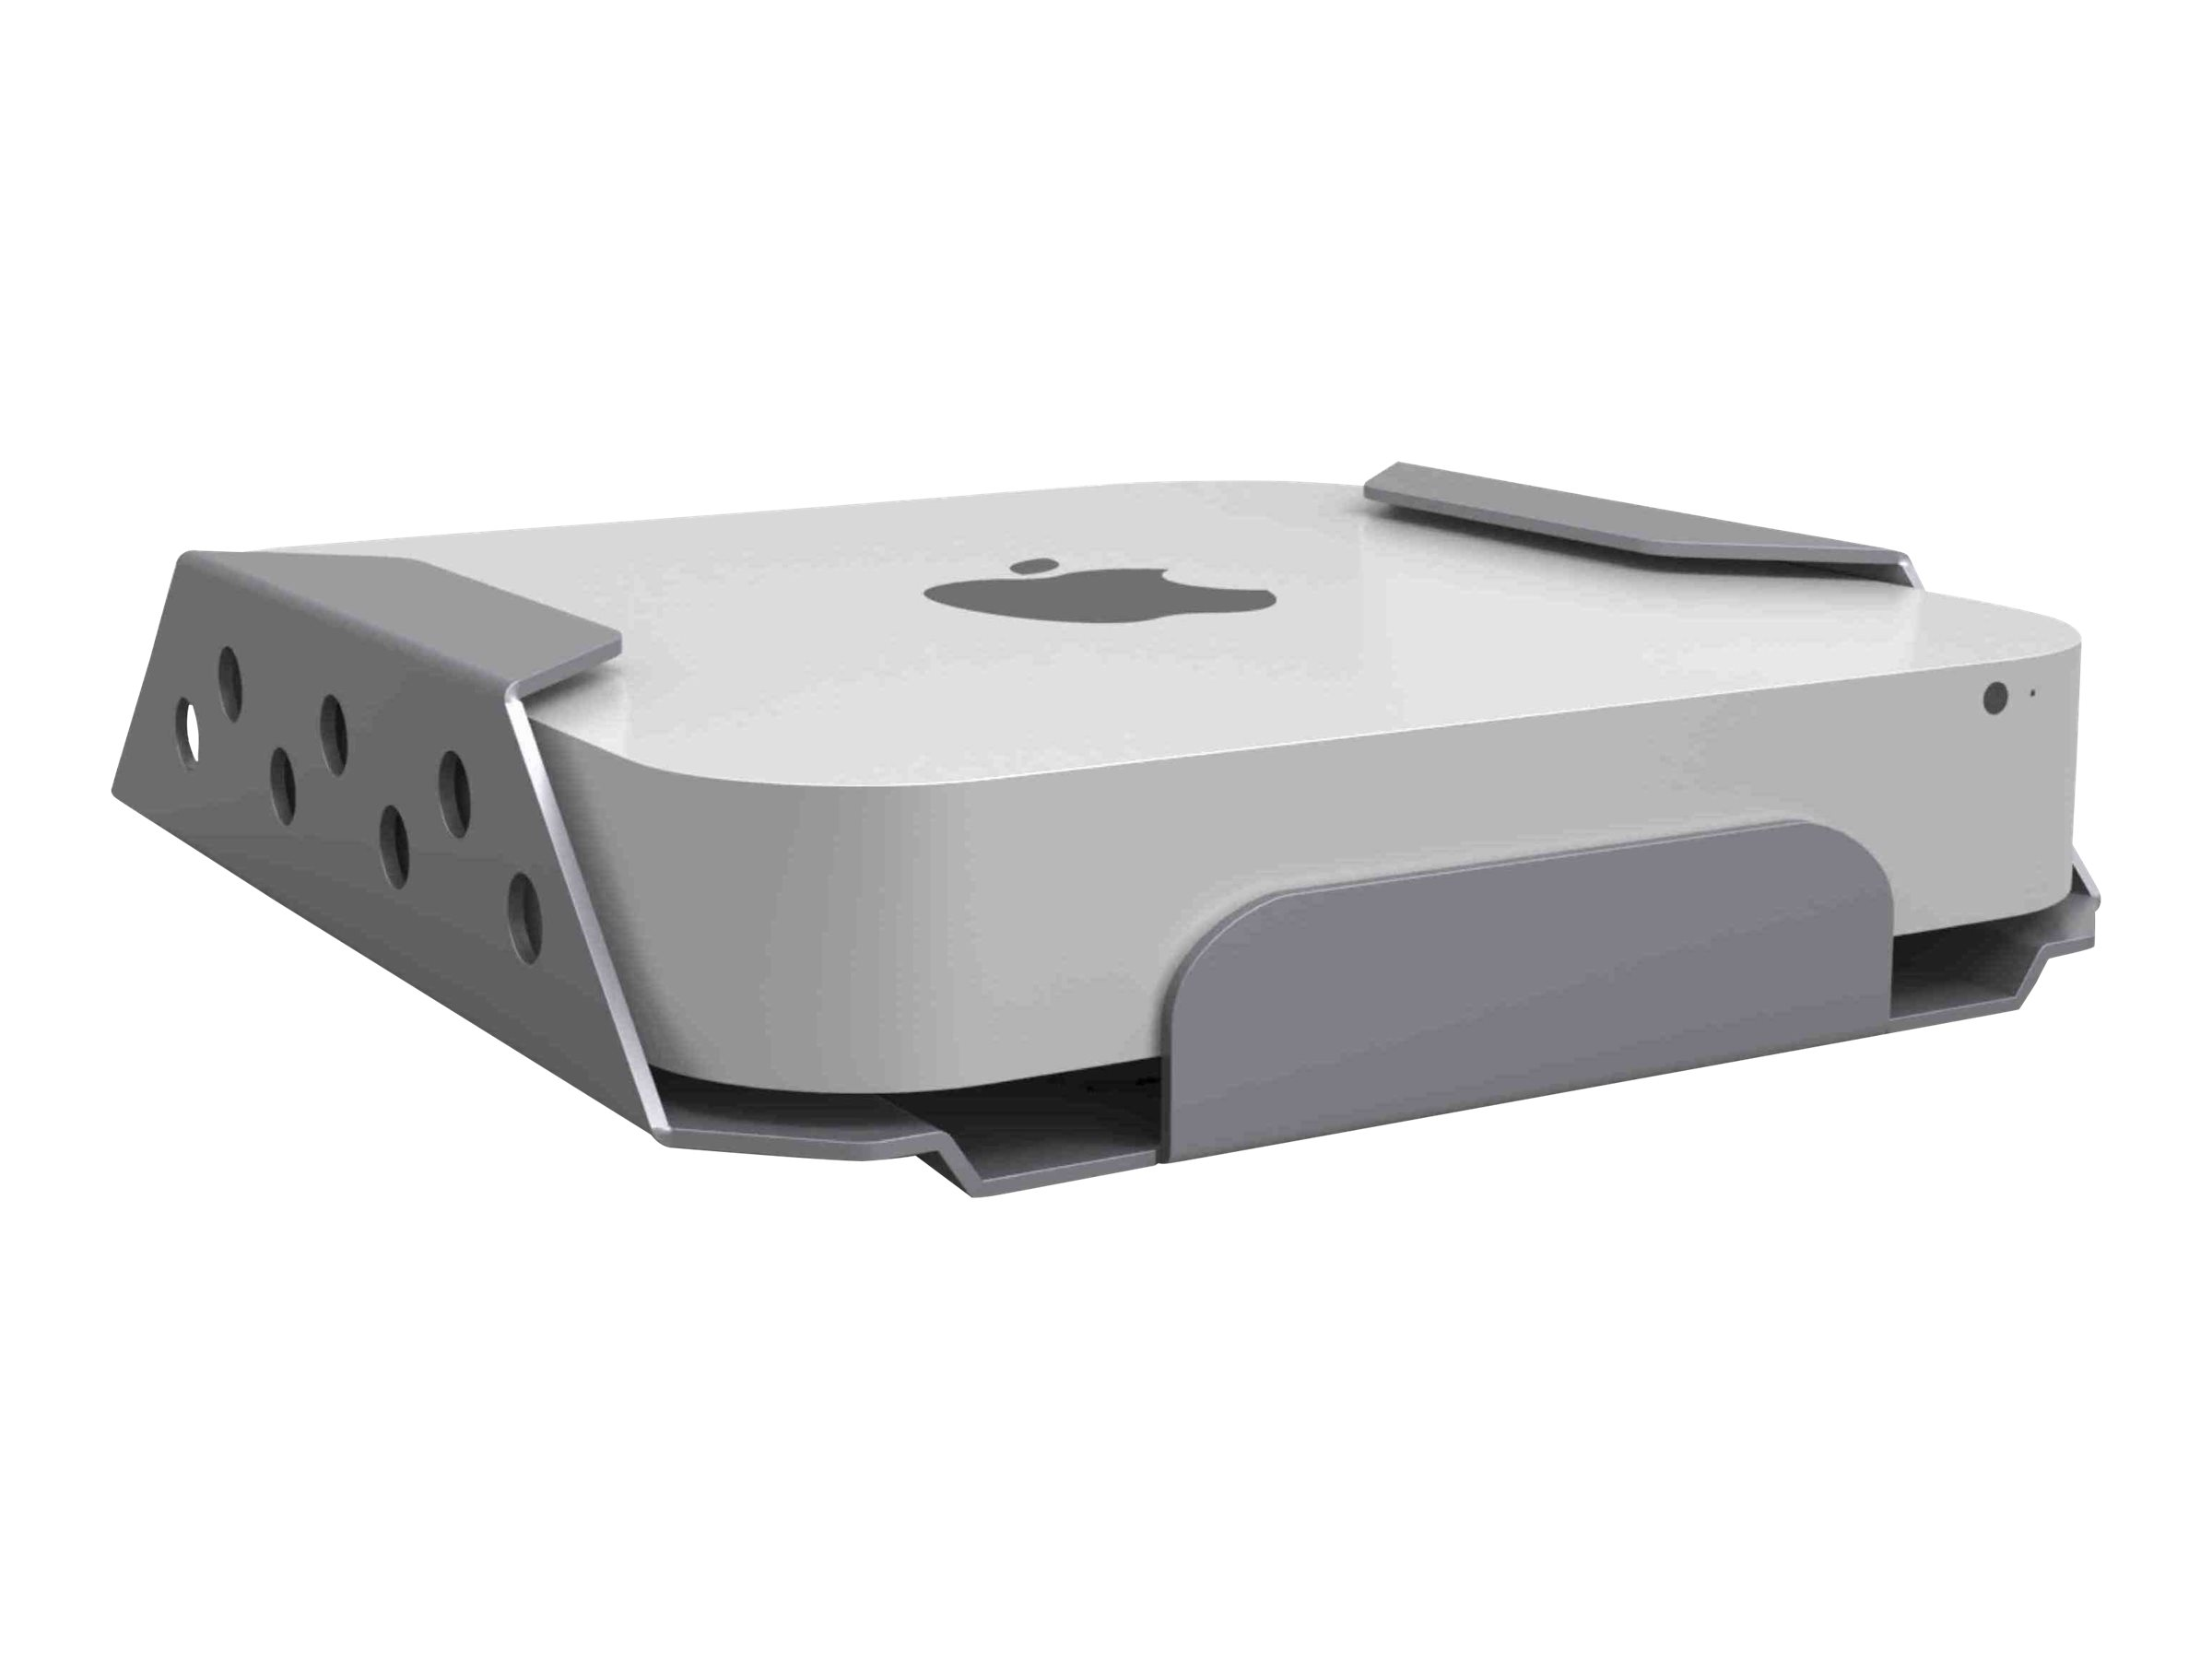 Compulocks Mac Mini Secure Mount Enclosure with Lockable Head - Sicherheitskit - Wand montierbar, unter Tisch montierbar - für Apple Mac mini (Ende 2012, Ende 2014, Mitte 2010, Mitte 2011)